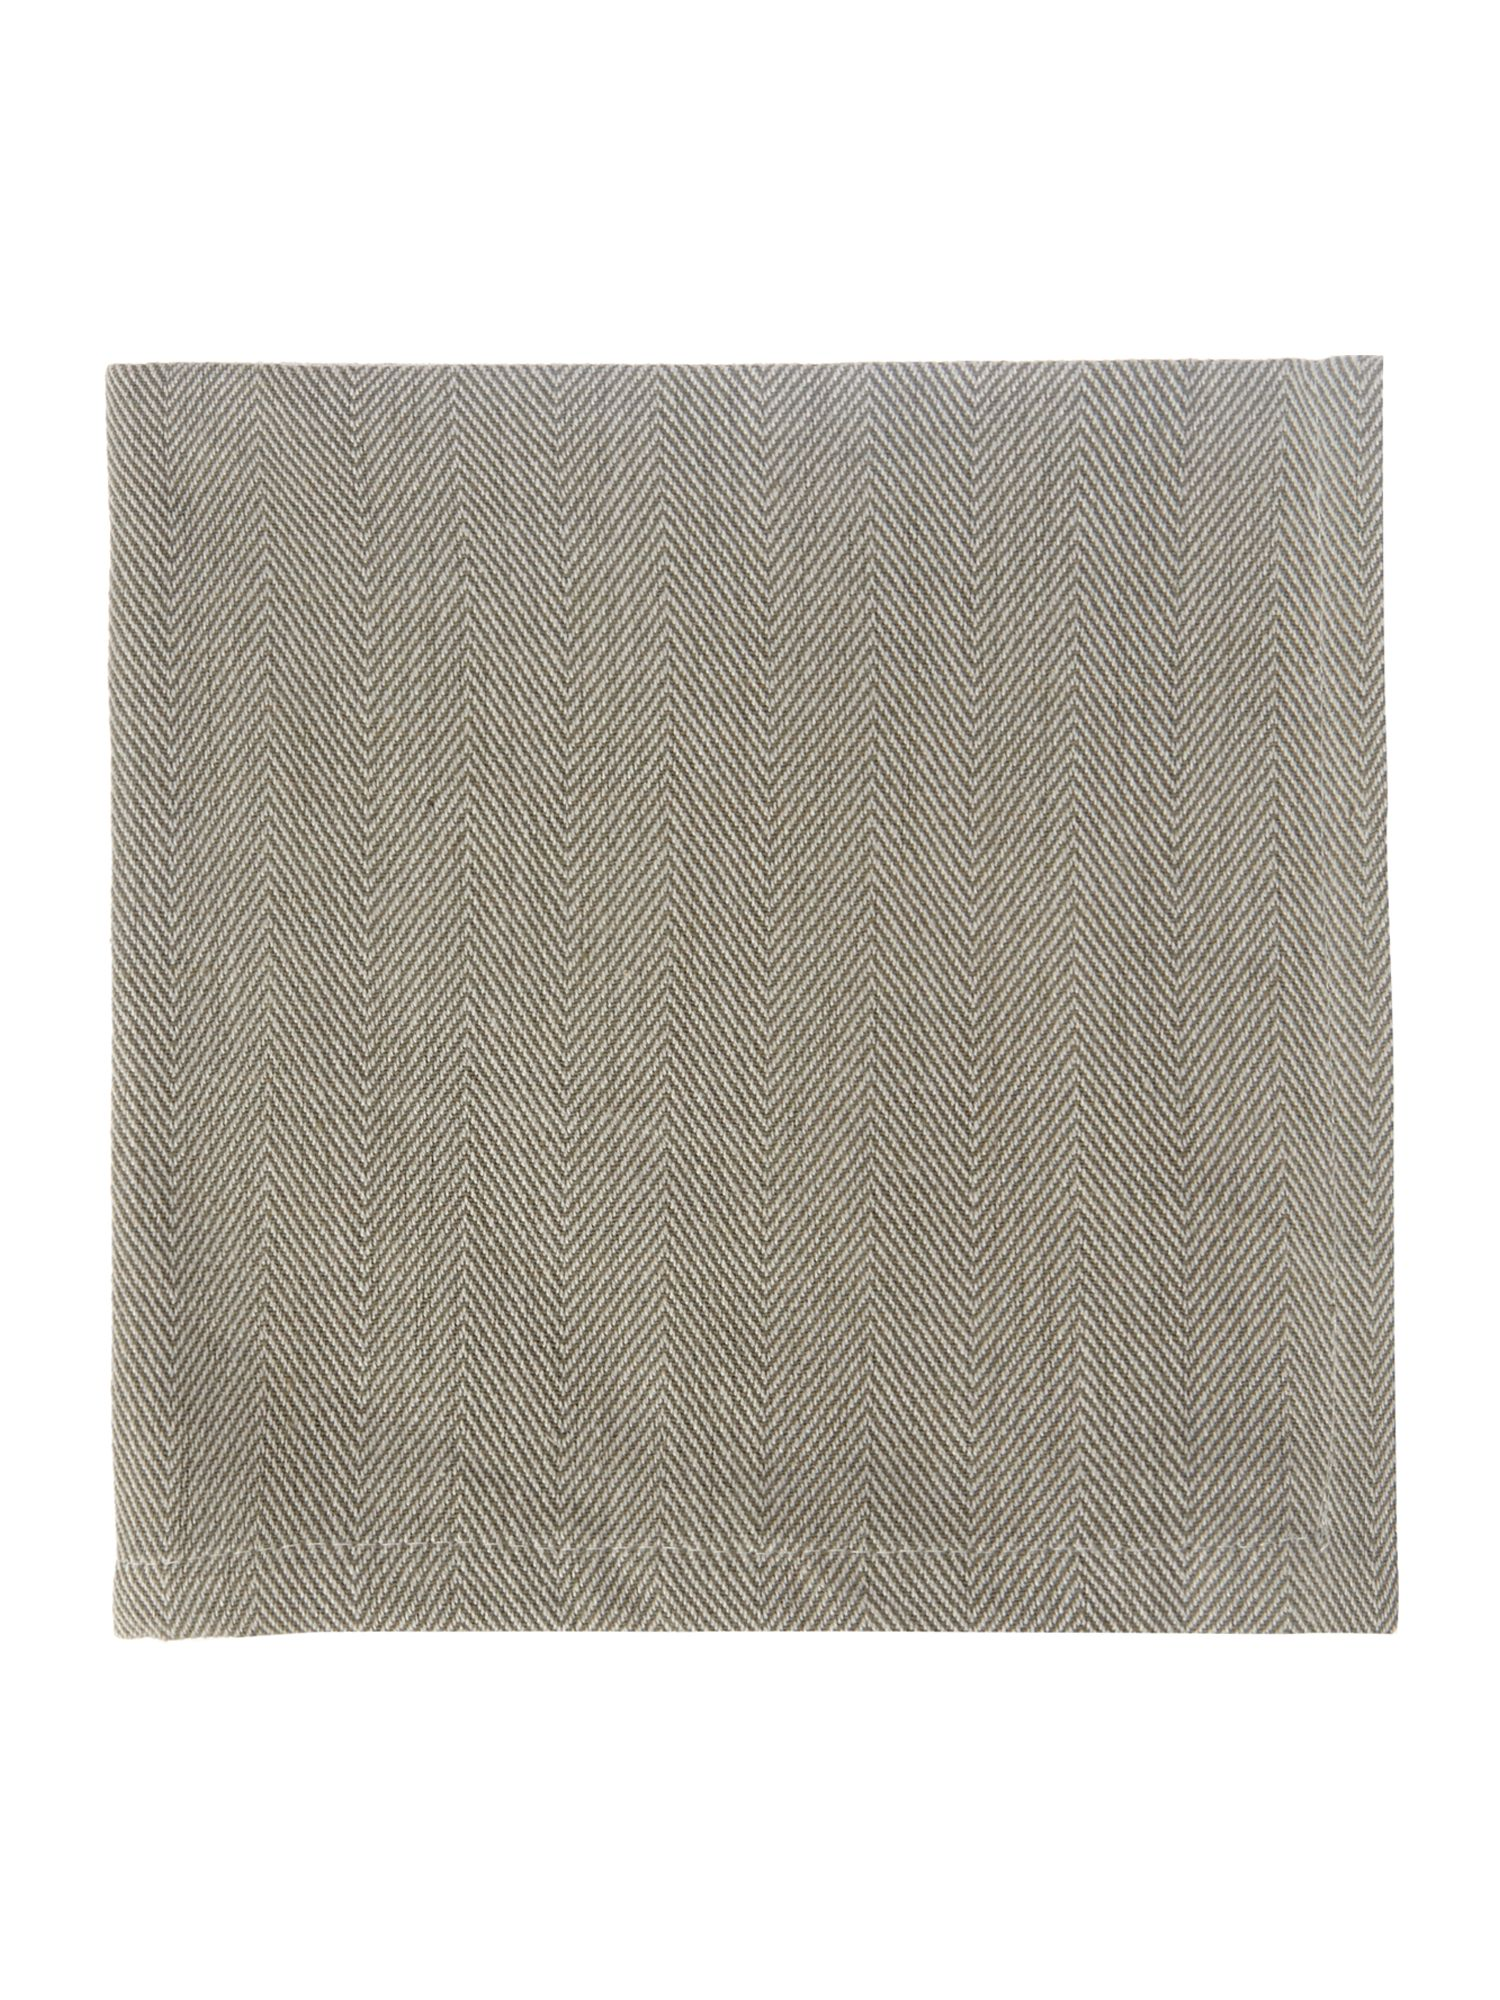 Herringbone Set of 4 Napkins